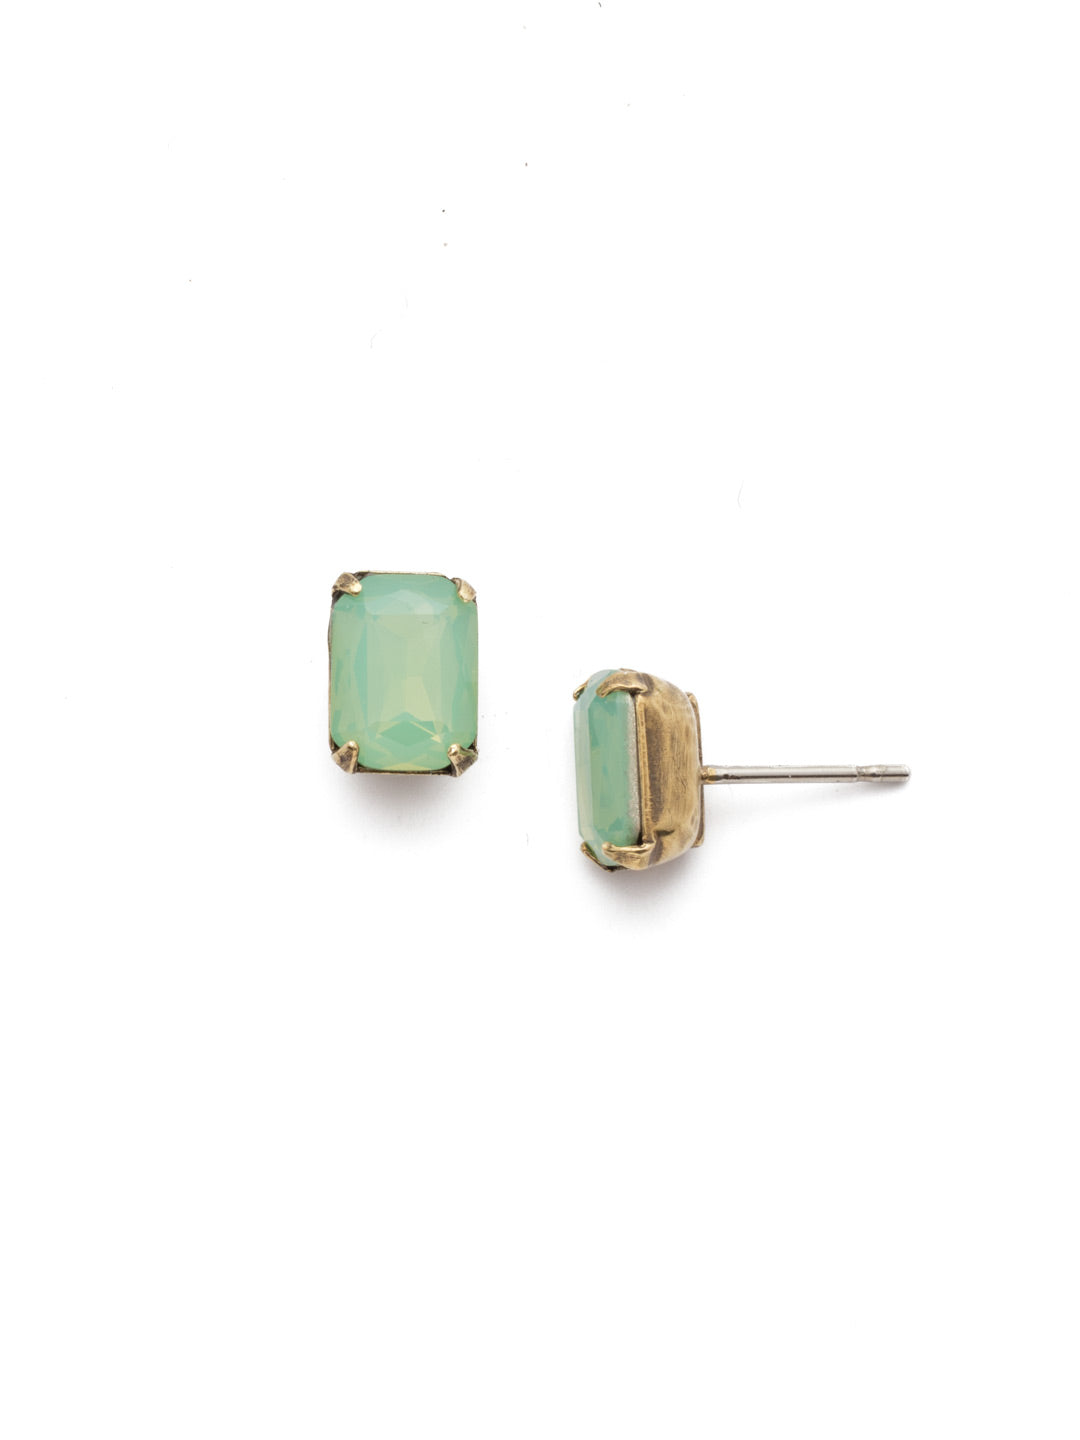 Mini Emerald Cut Stud Earrings - EBY42AGPAC